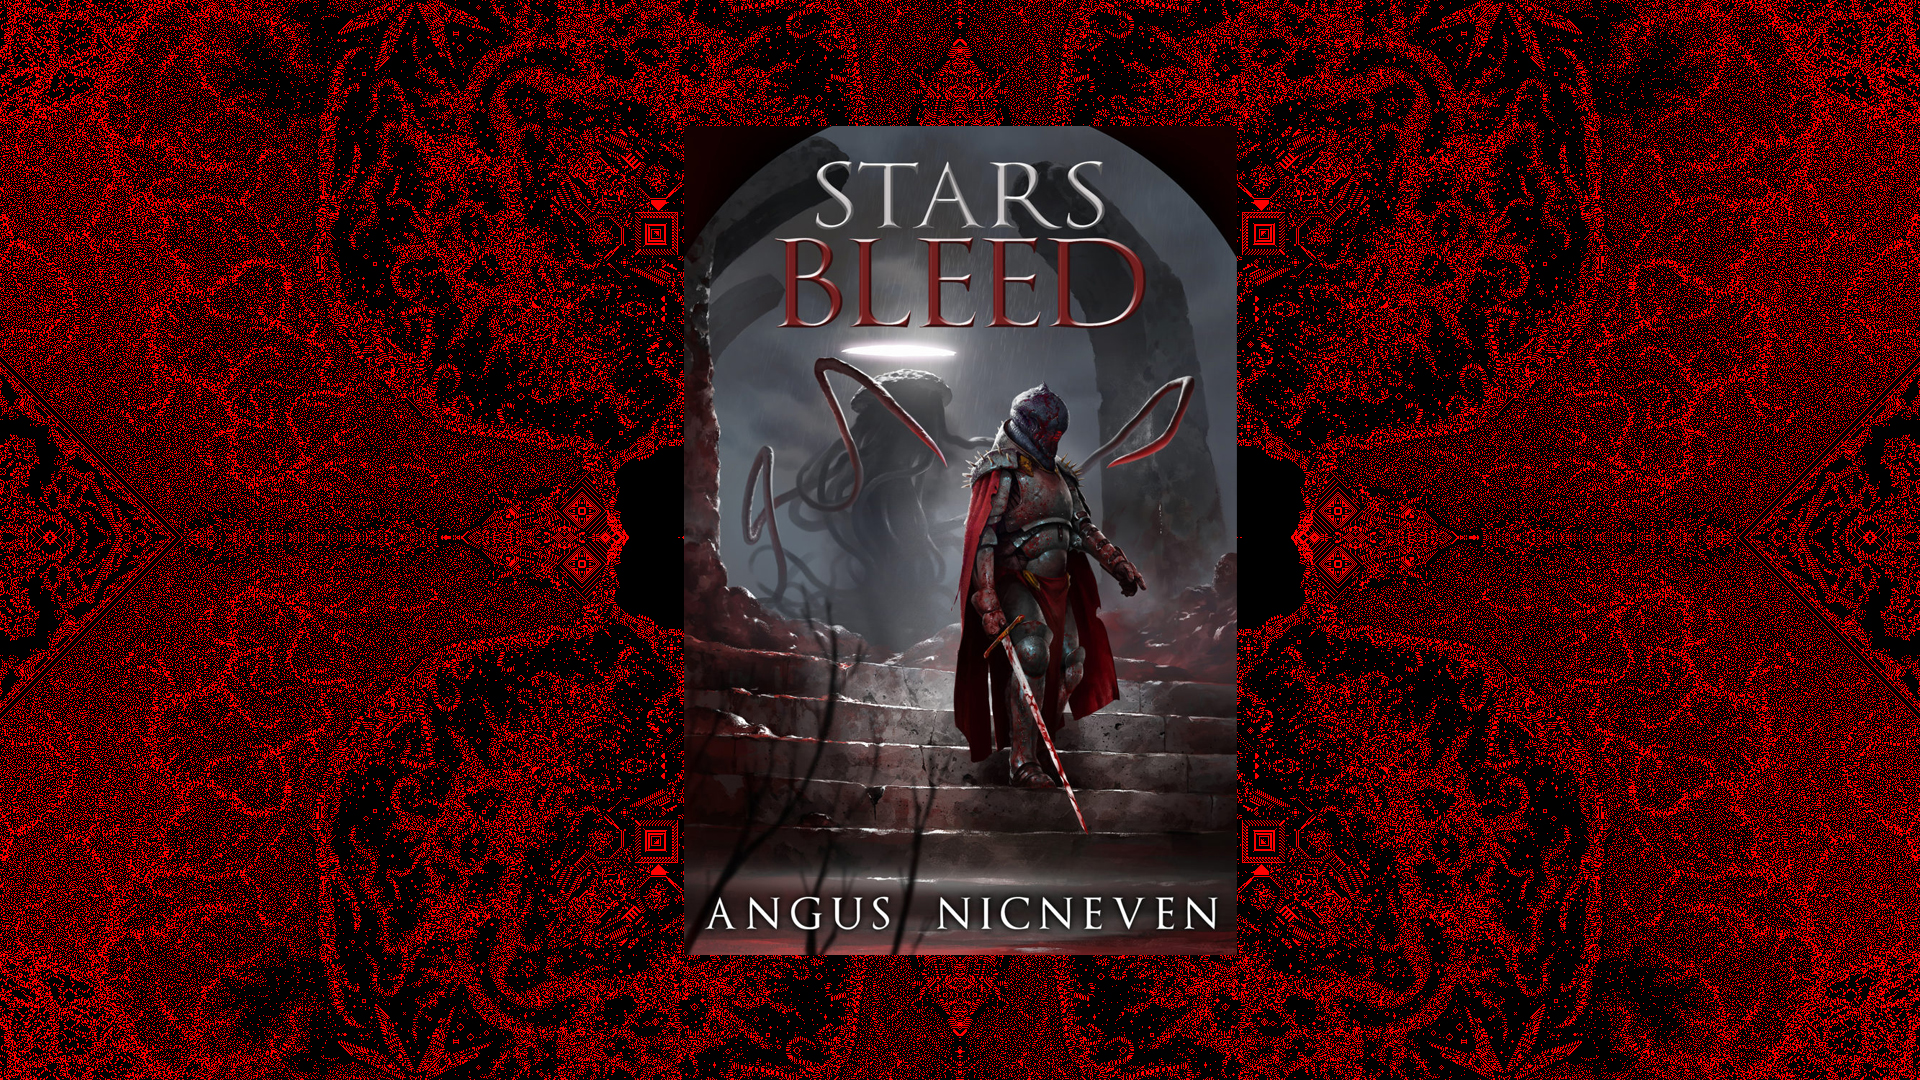 Interview with Angus Nicneven, Author of Stars Bleed